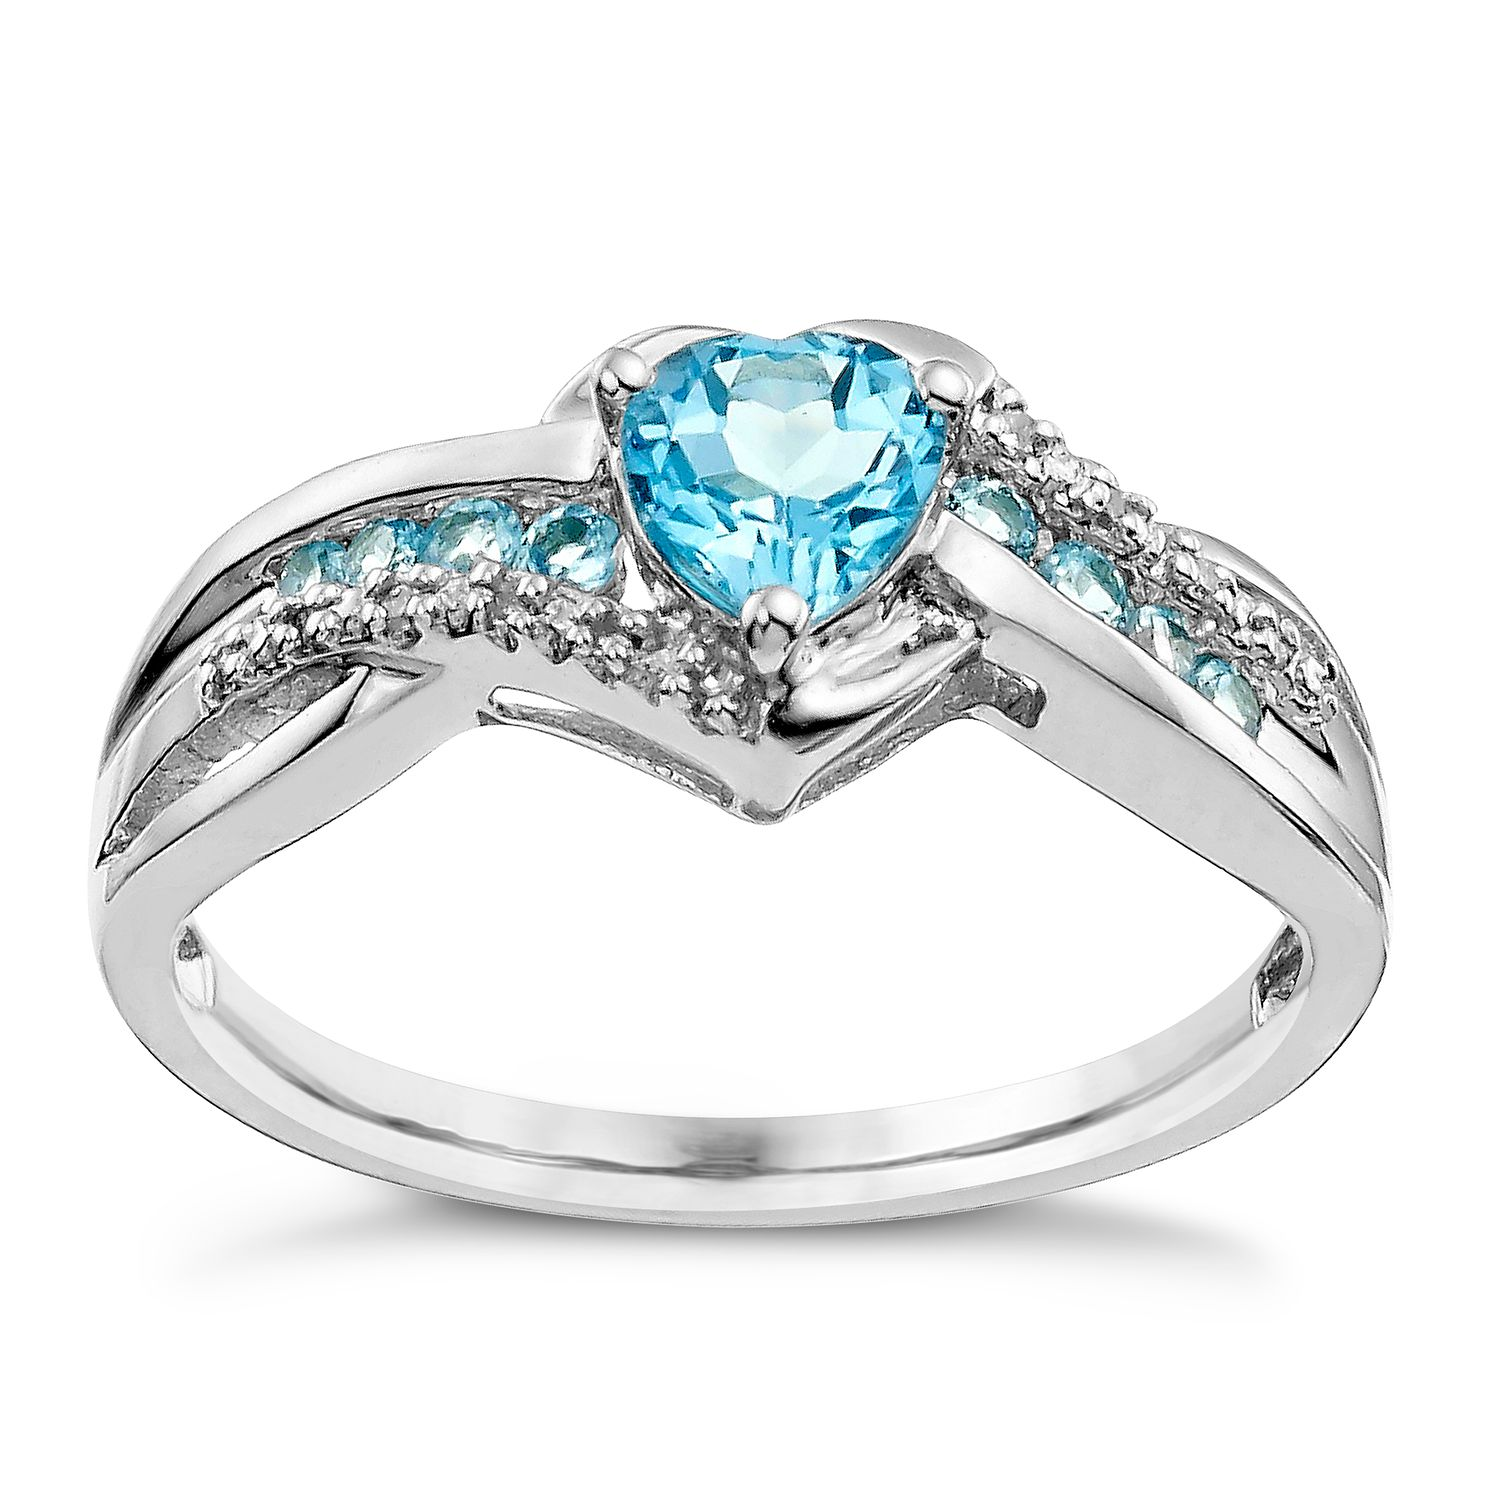 galleries rings ring stone goldsmiths blue engagement with and diamond pear shaped mccaul sapphire platinum